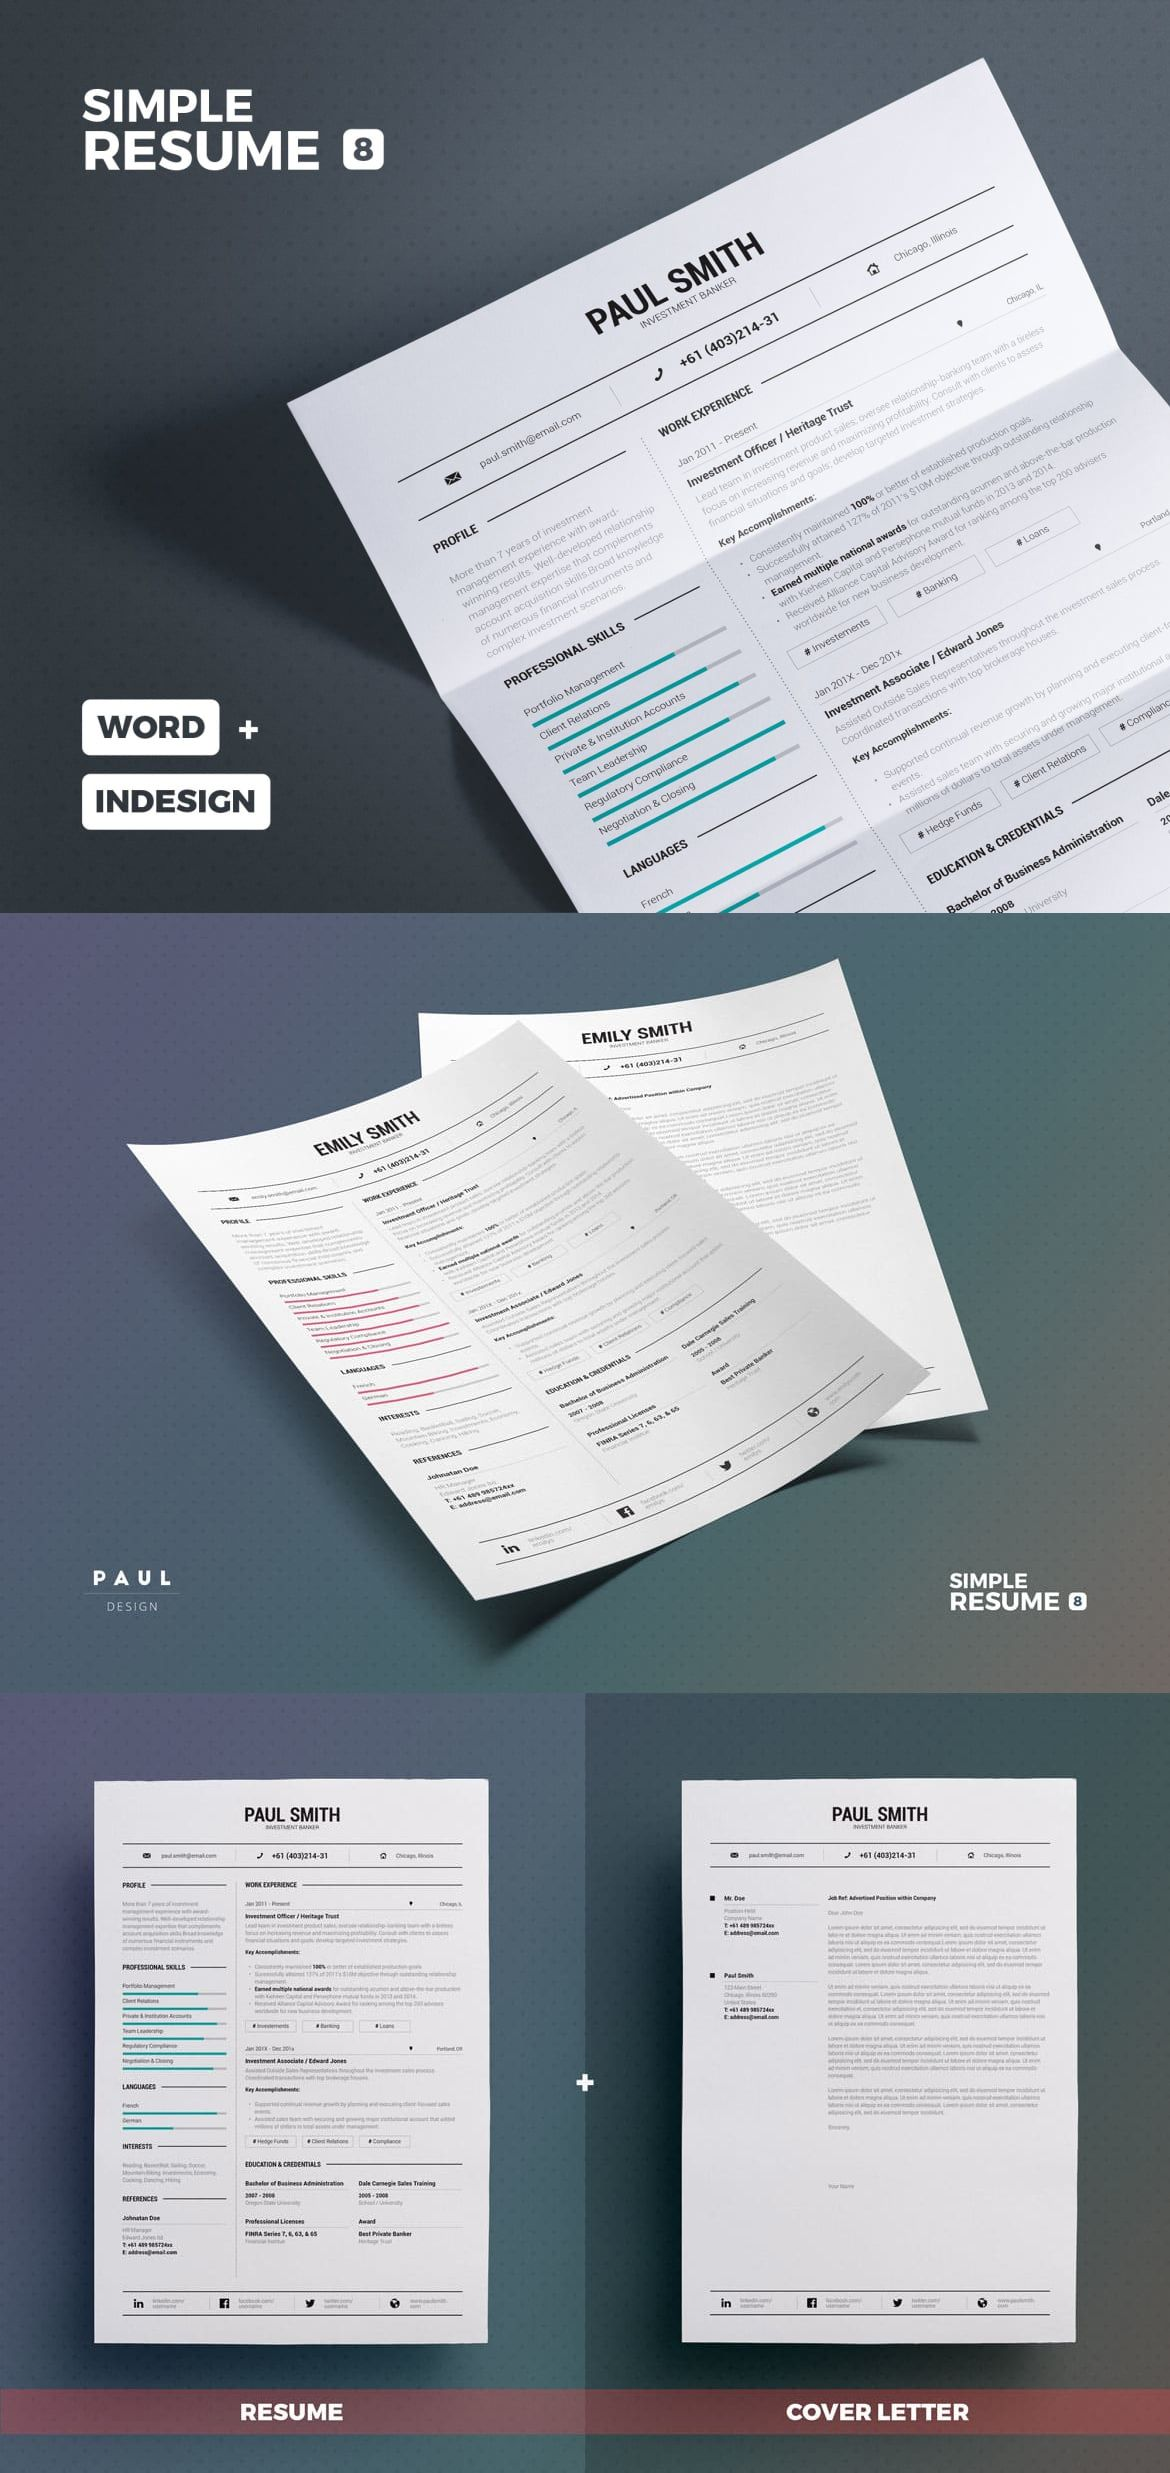 Simple Resume/Cv Template INDD - A4 and US Letter Paper Size ...